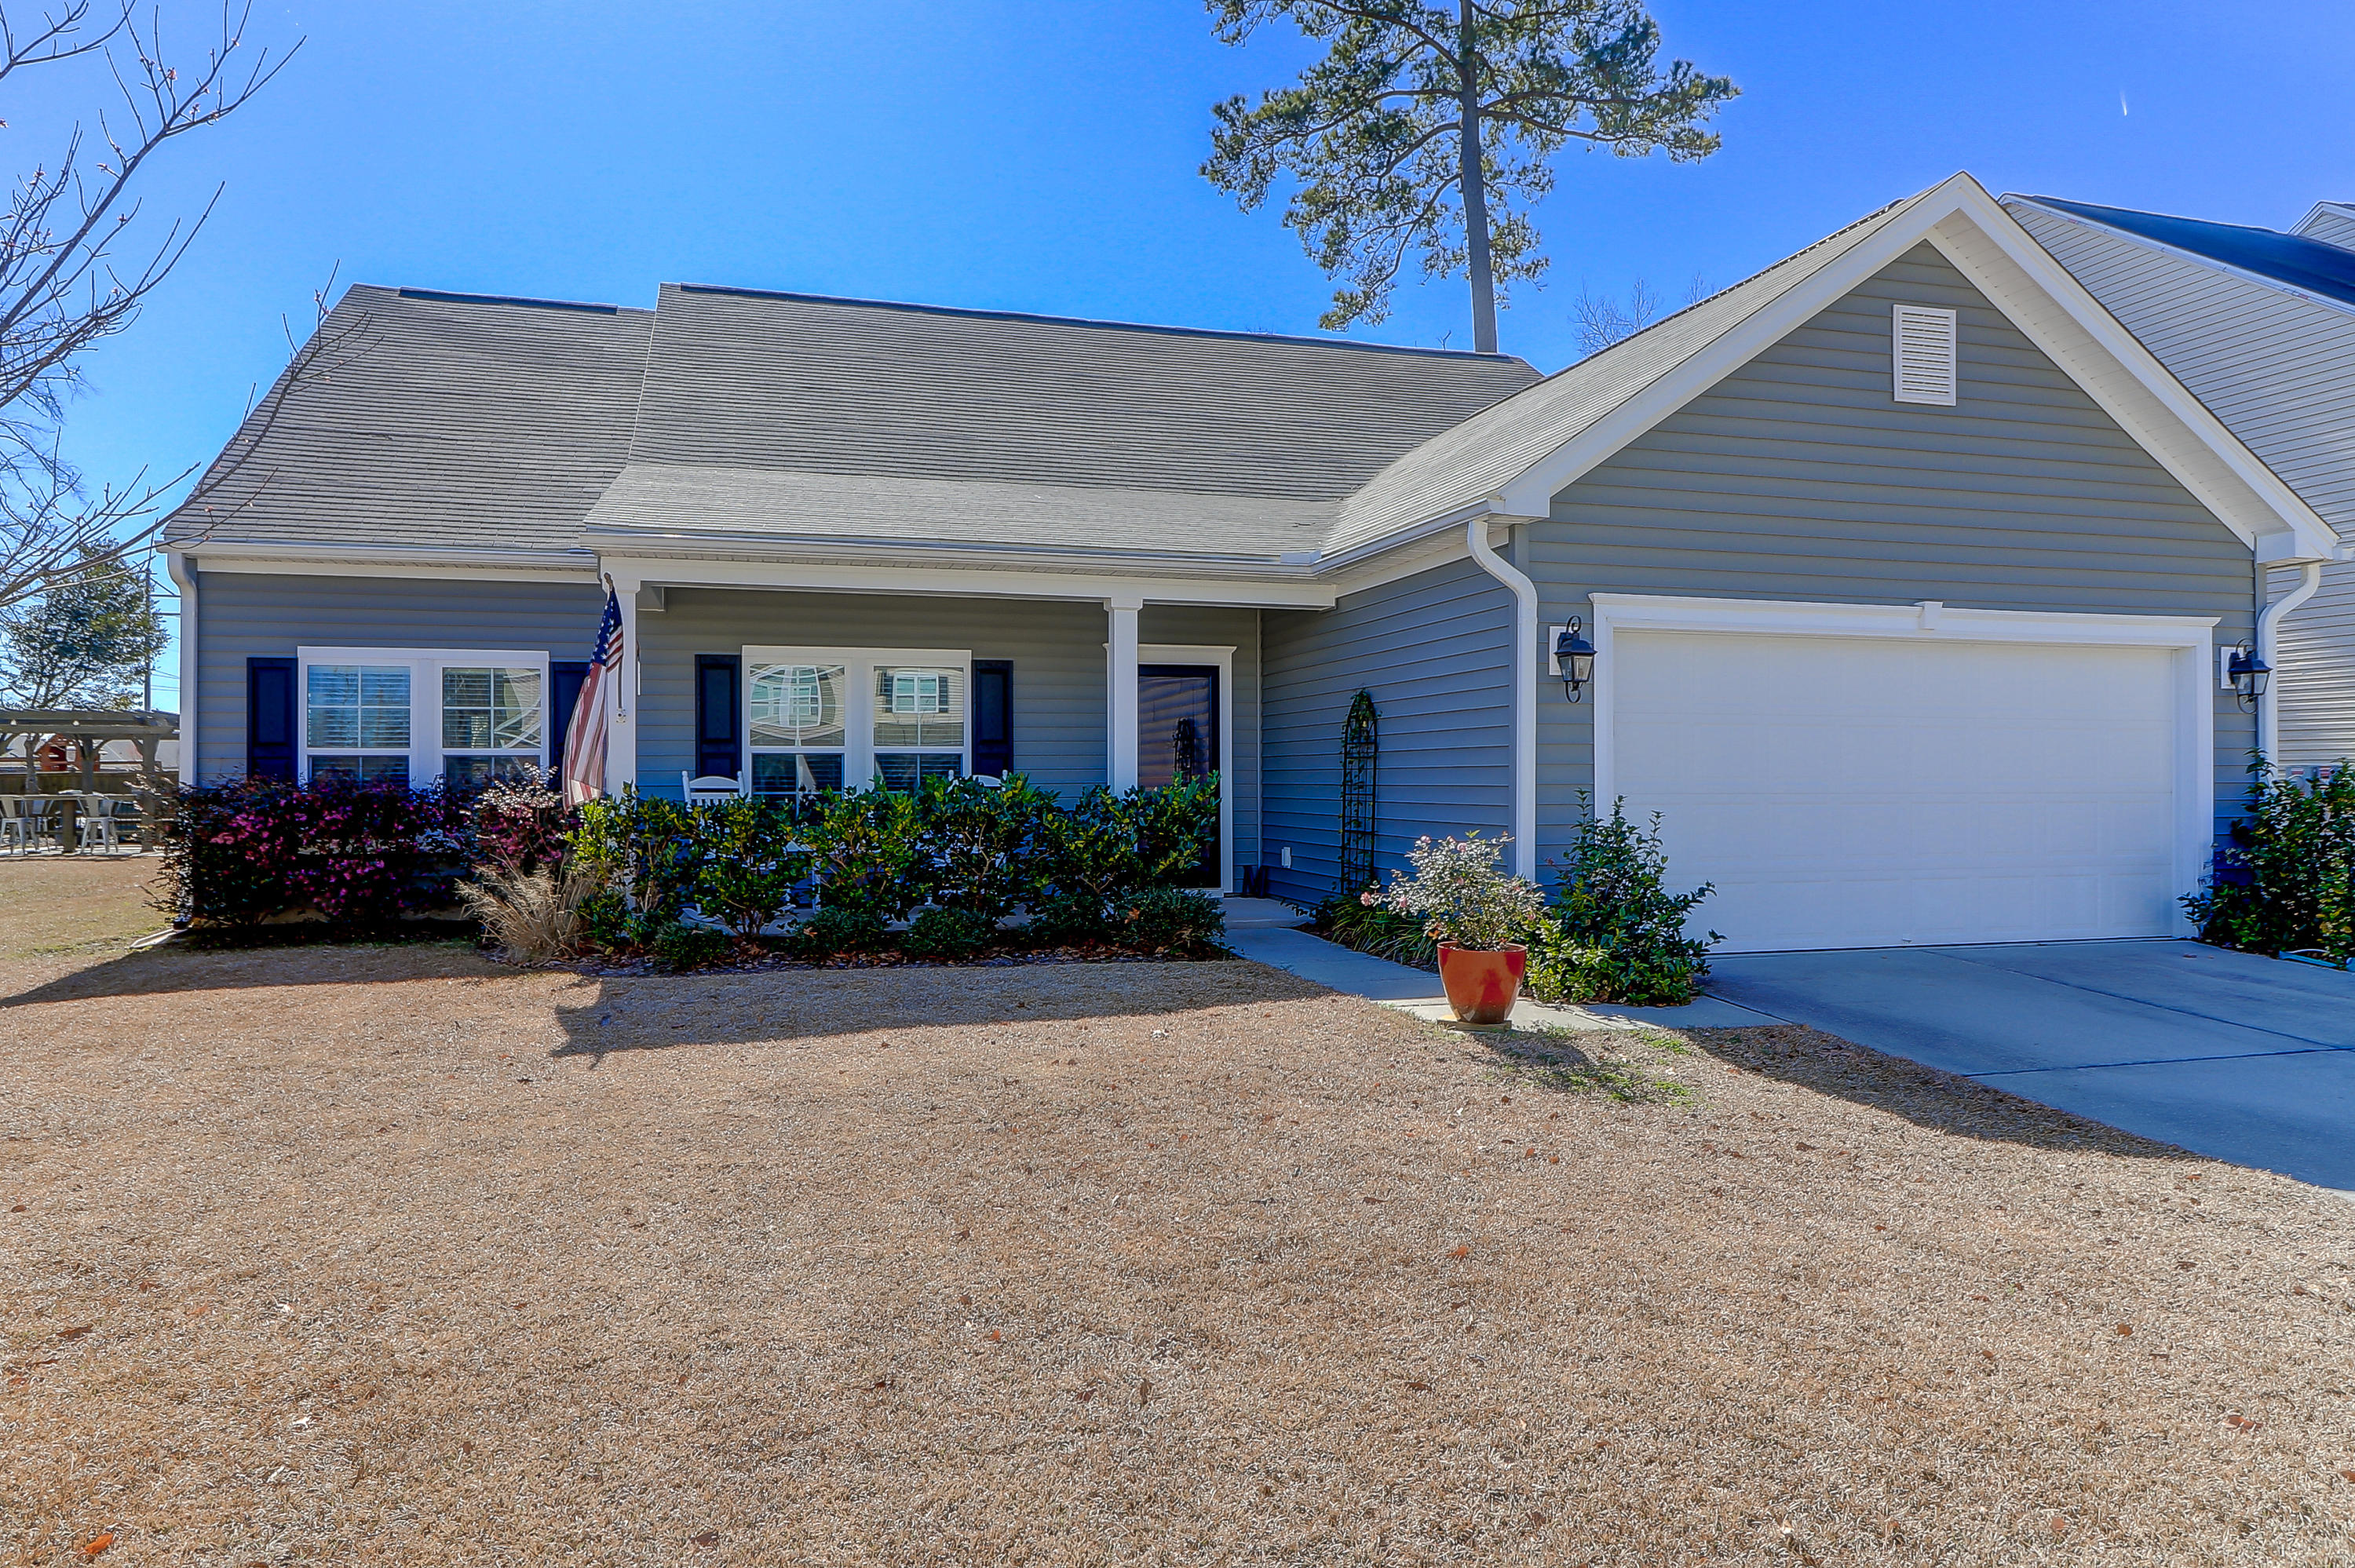 Tanner Plantation Homes For Sale - 1403 Song Sparrow Way, Hanahan, SC - 1